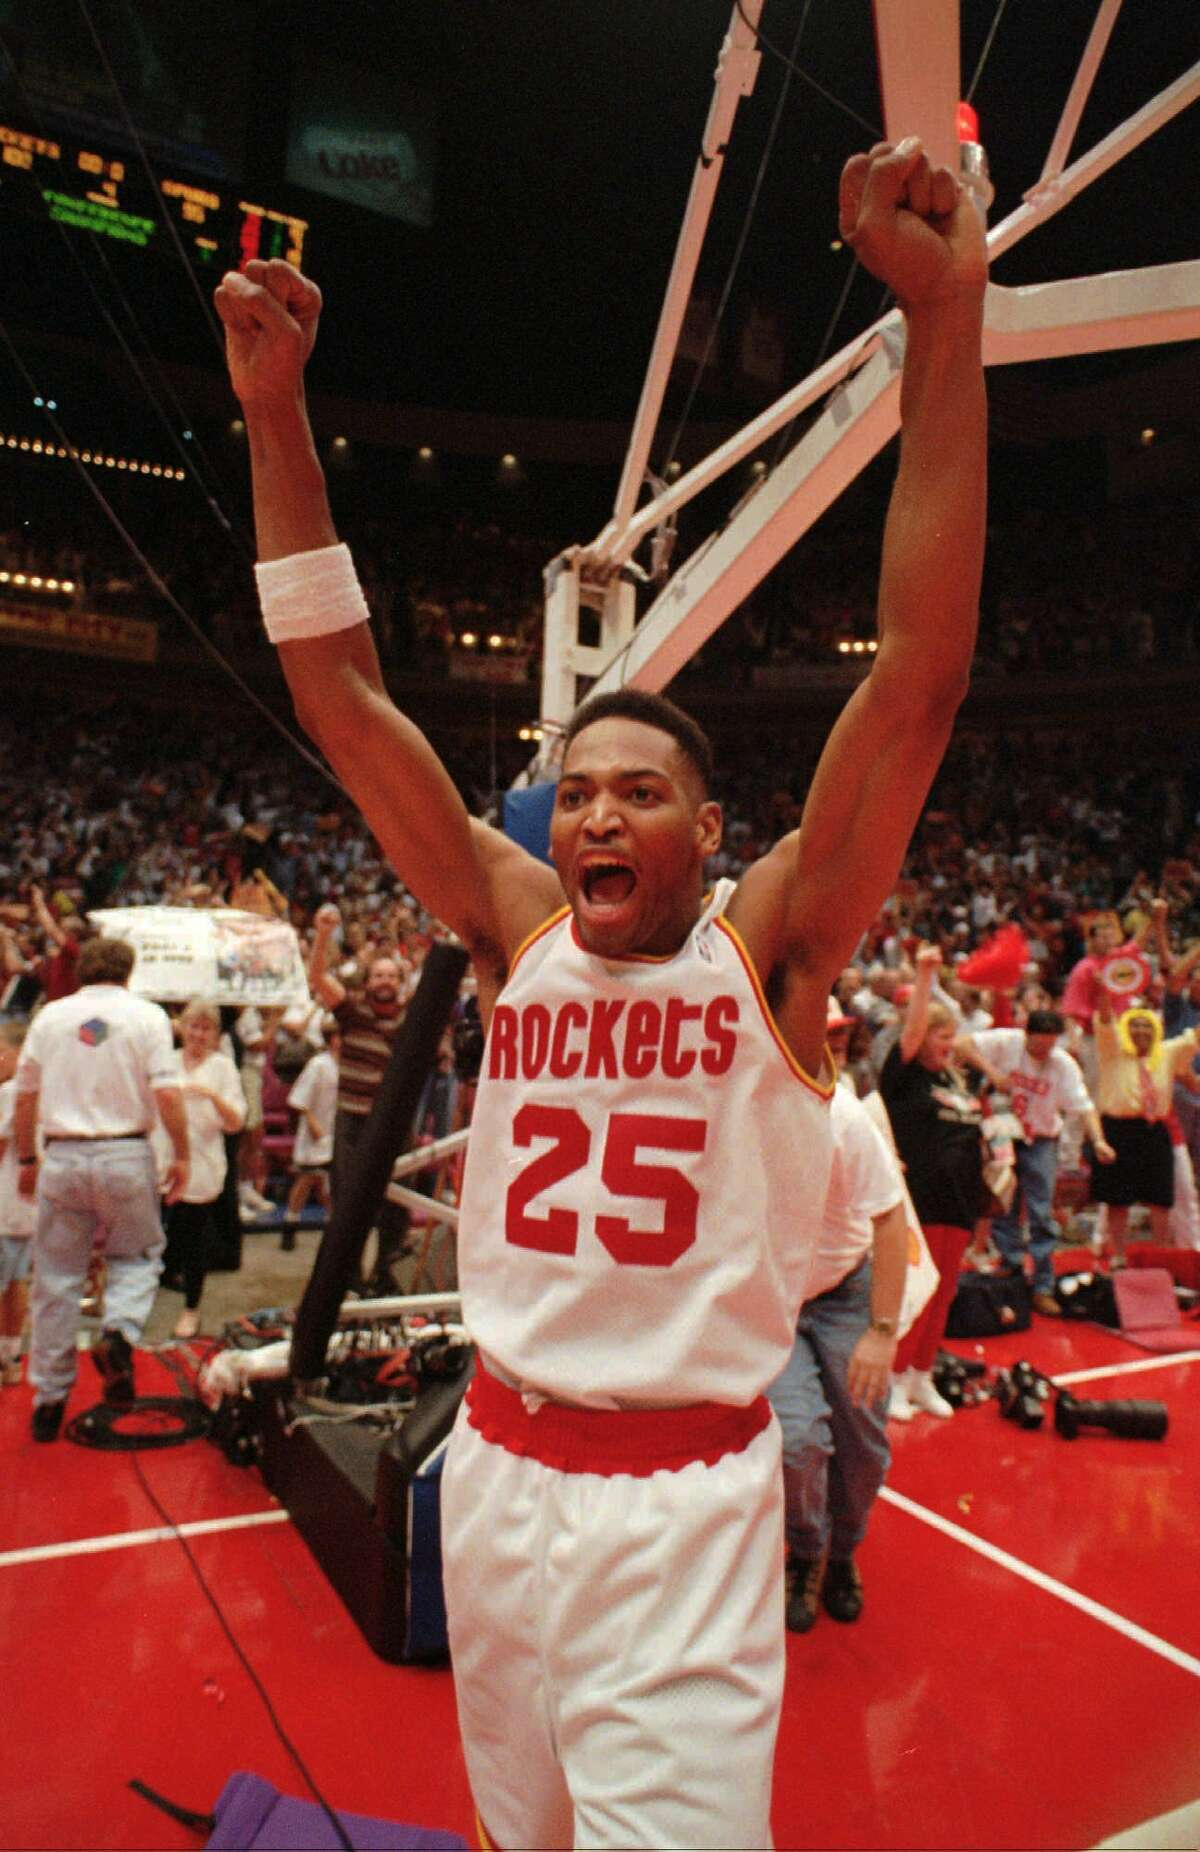 Robert Horry, 1994 This trade with comes with an asterisk. The Rockets traded Horry (with Matt Bullard and two second-round picks) to the Pistons for Sean Elliott. However, Elliott failed his physical because of a kidney condition, causing the trade to be called off. Horry came back to Houston and became more assertive on offense, giving the Rockets another shooter to complement Hakeem Olajuwon. It's hard to imagine the Rockets winning two titles without Horry's contributions. Sometimes, the best trade is one that doesn't go through.